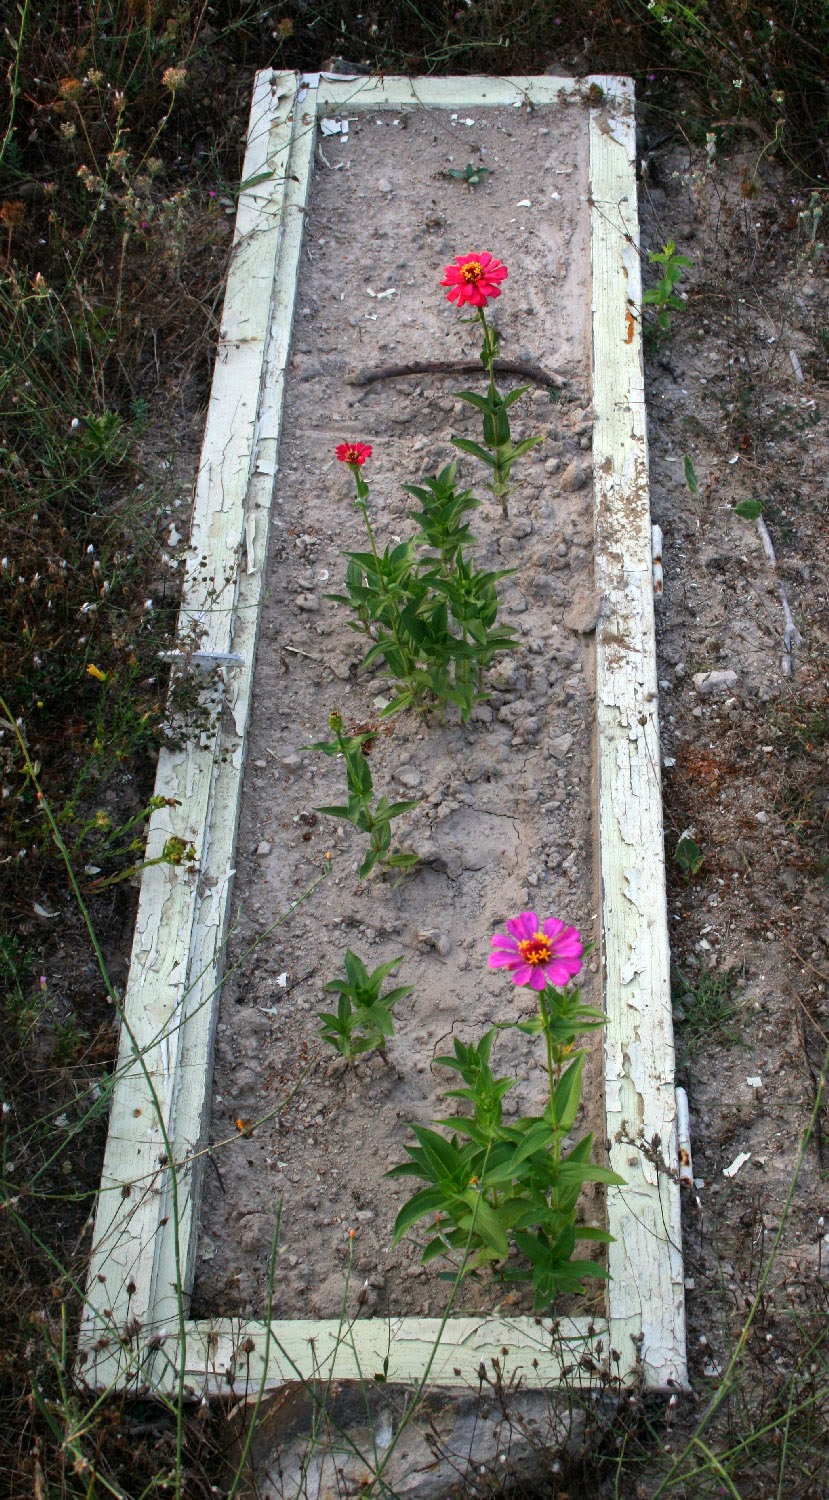 Zinnias are getting there